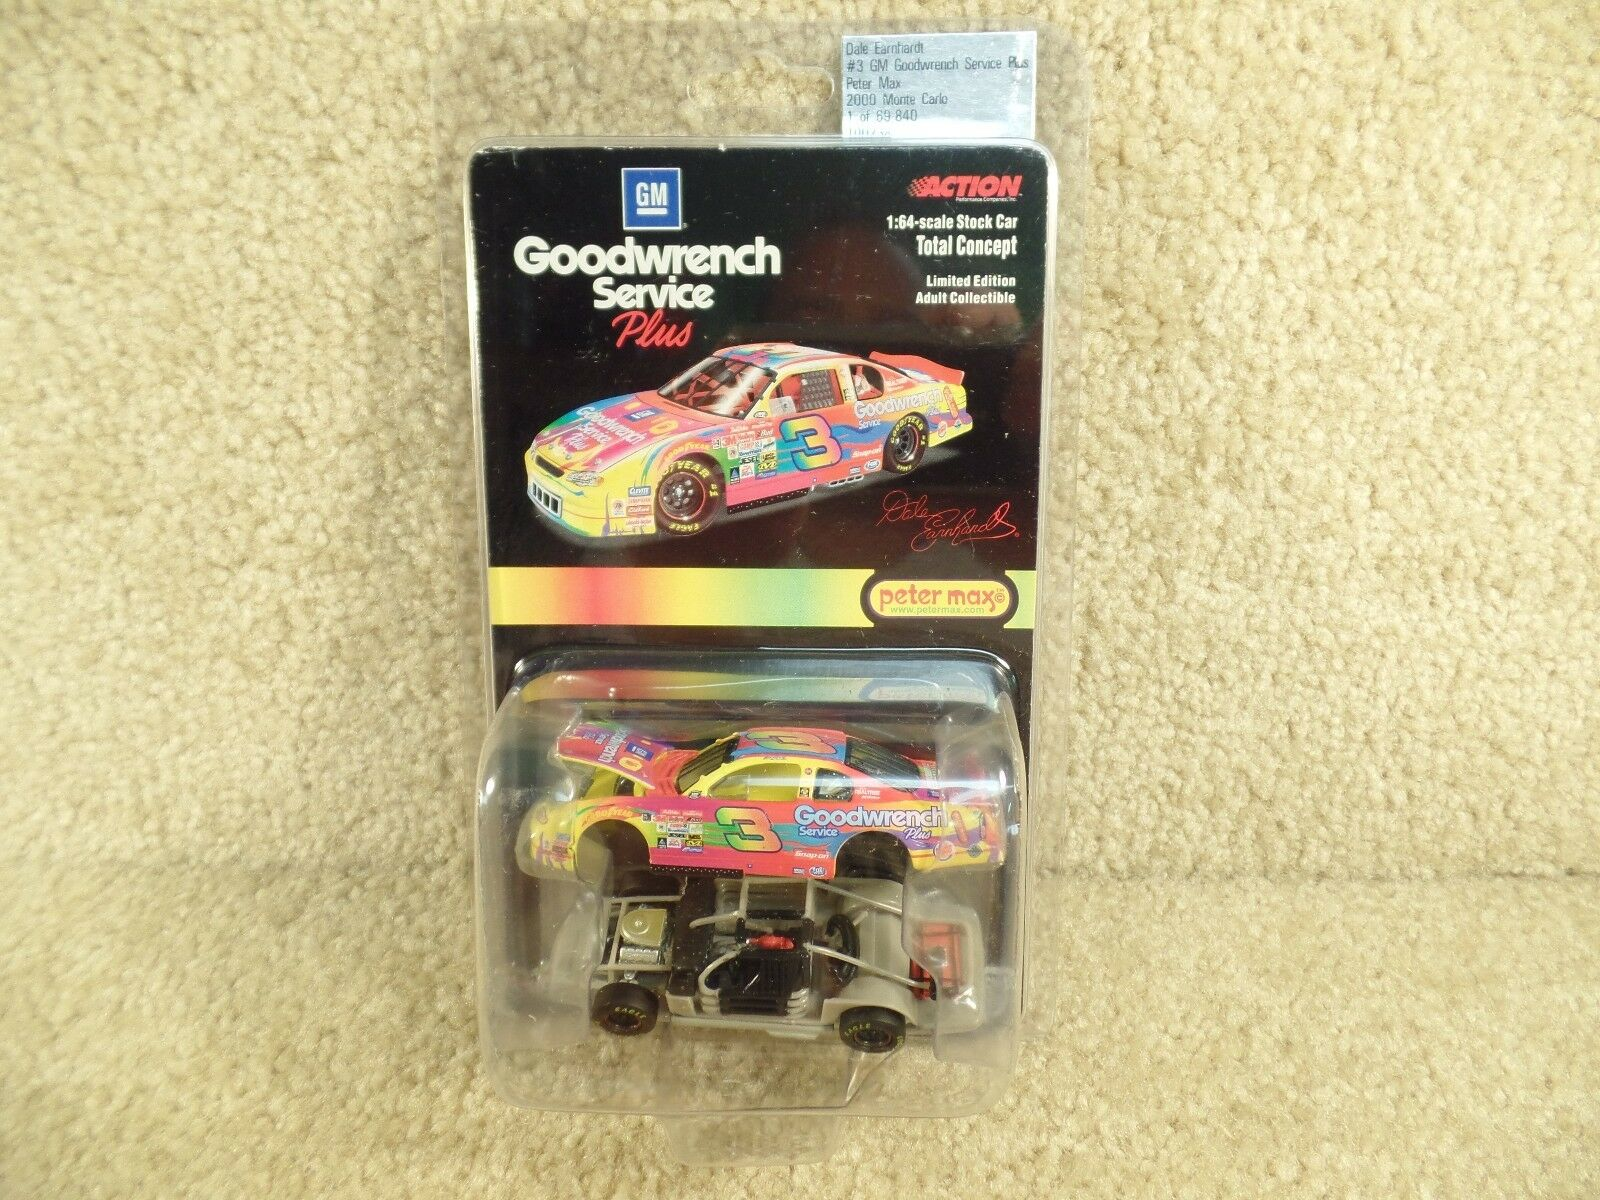 New 2000 Action 1 64 Scale Diecast NASCAR Dale Earnhardt Sr Peter Max Chevy a